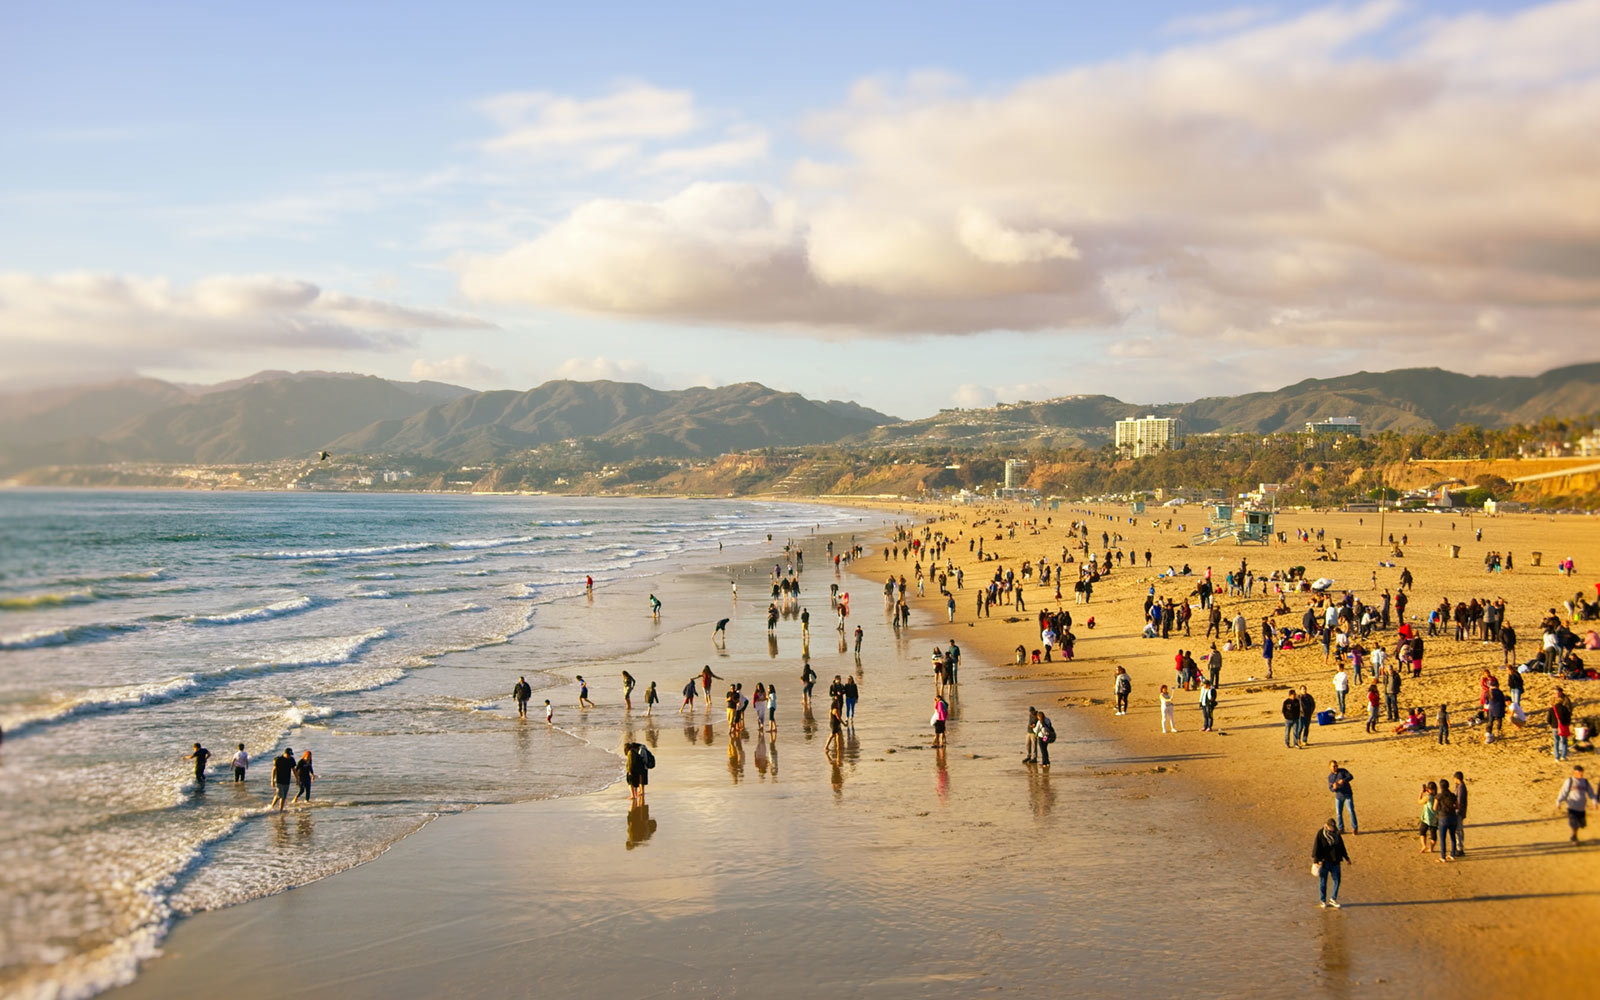 Santa Monica Beach, California